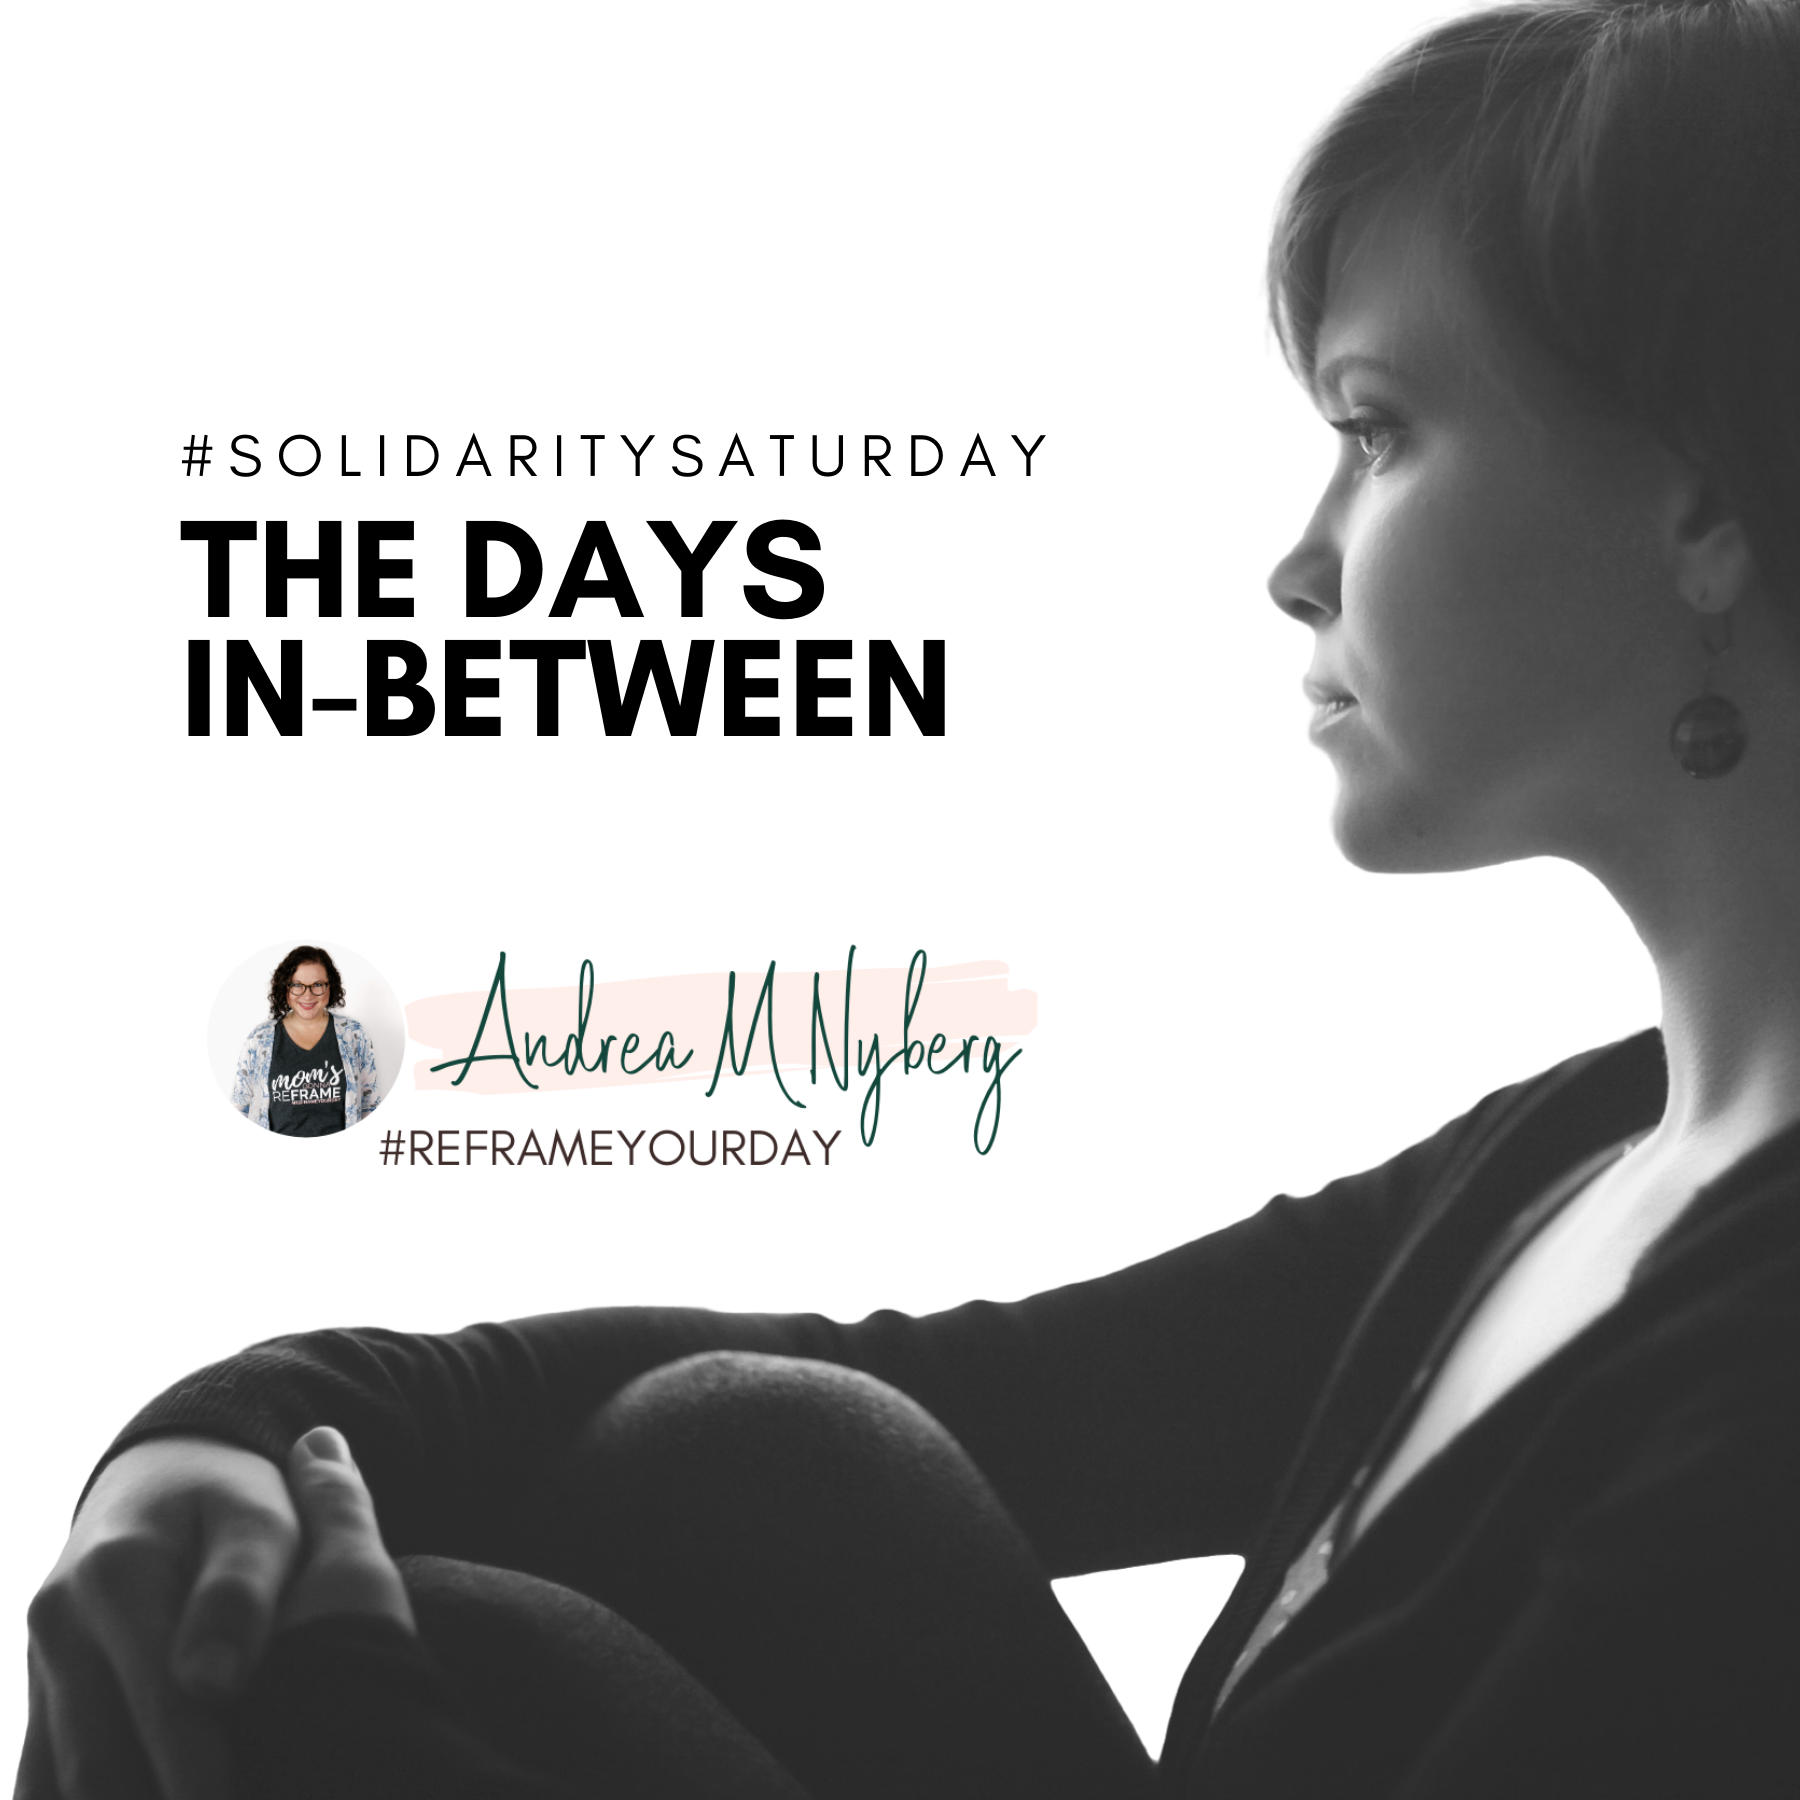 #SolidaritySaturday: A Prayer for the One Feeling Ill-Equipped